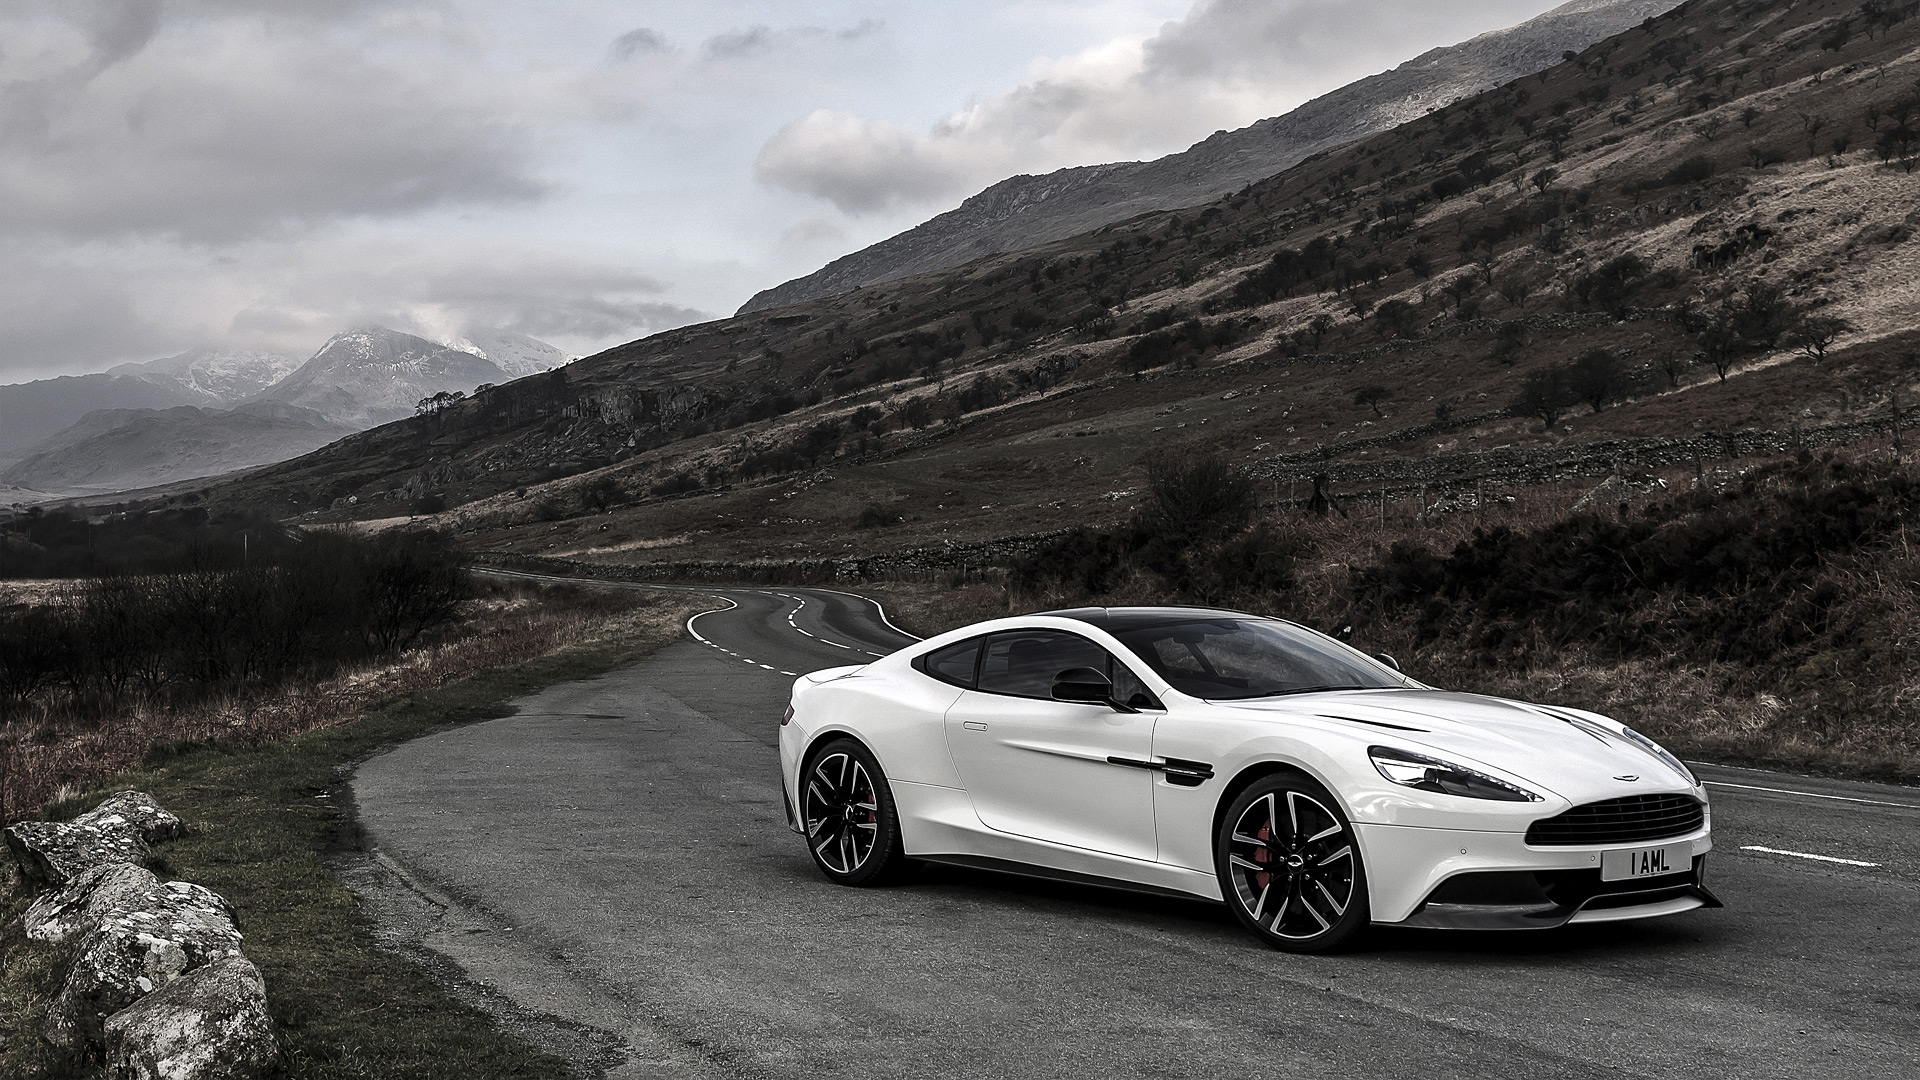 2015 Aston Martin Vanquish Carbon Edition Wallpapers & HD Image